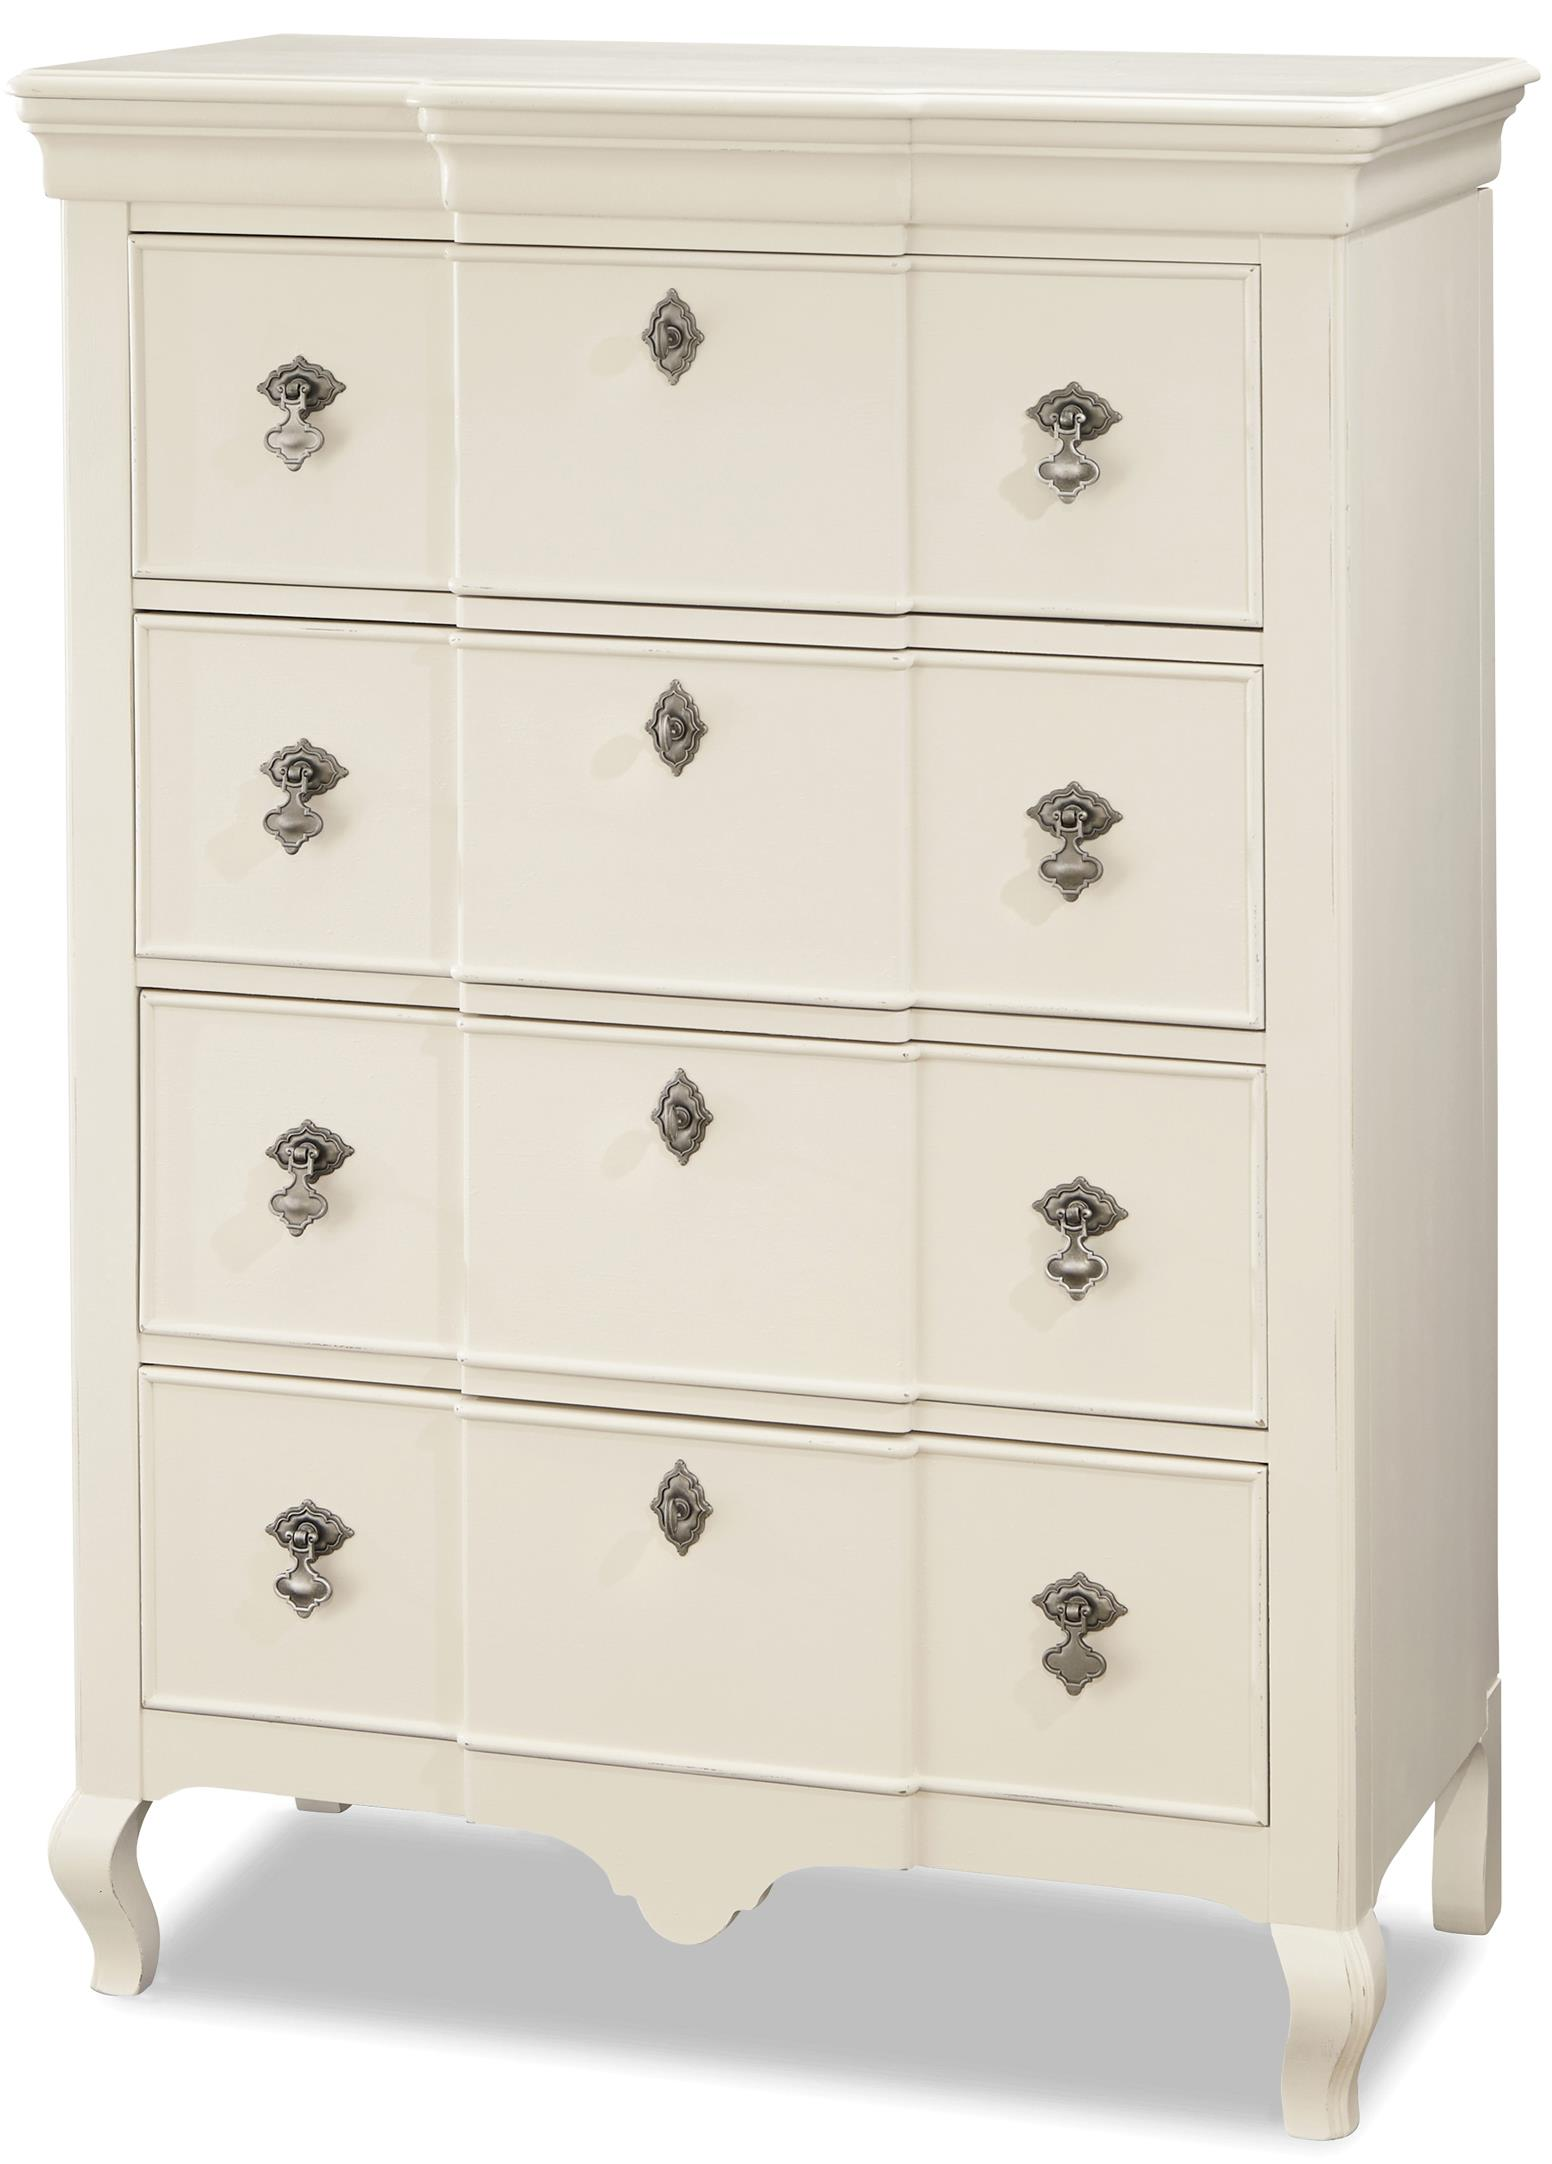 Morris Home Furnishings Penelope Penelope Drawer Chest - Item Number: 434A010